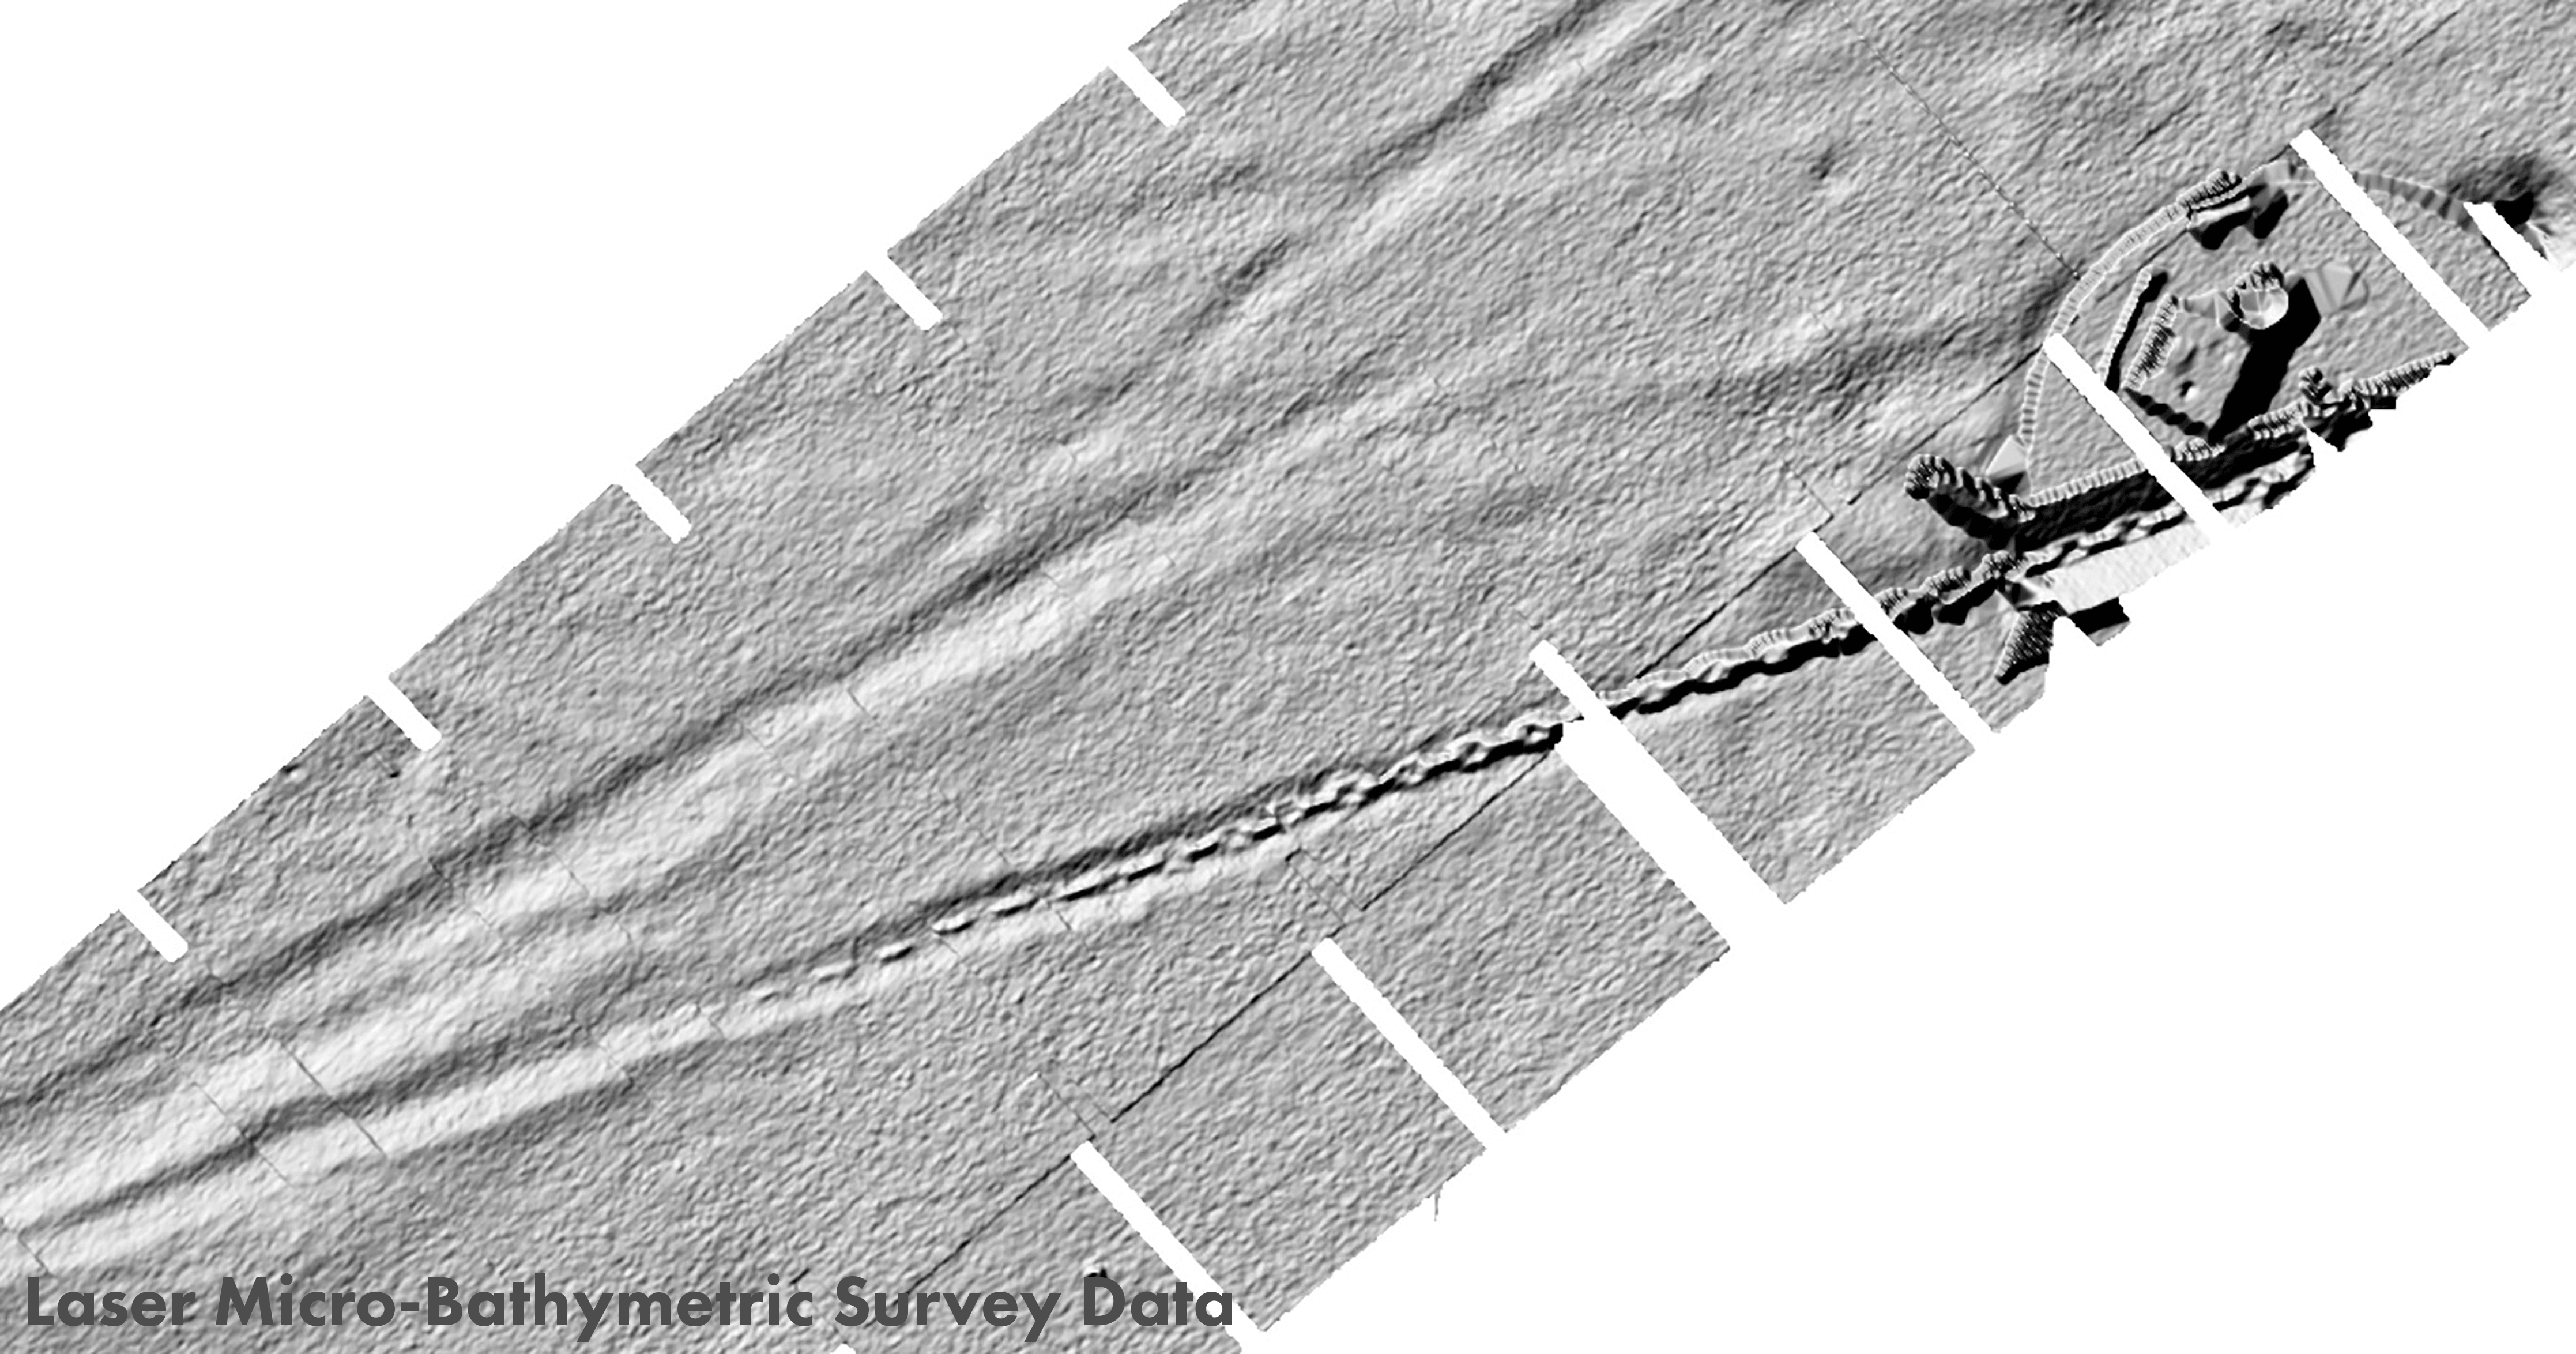 laser micro bathymetric survey data from auv-based pipeline surveying solution